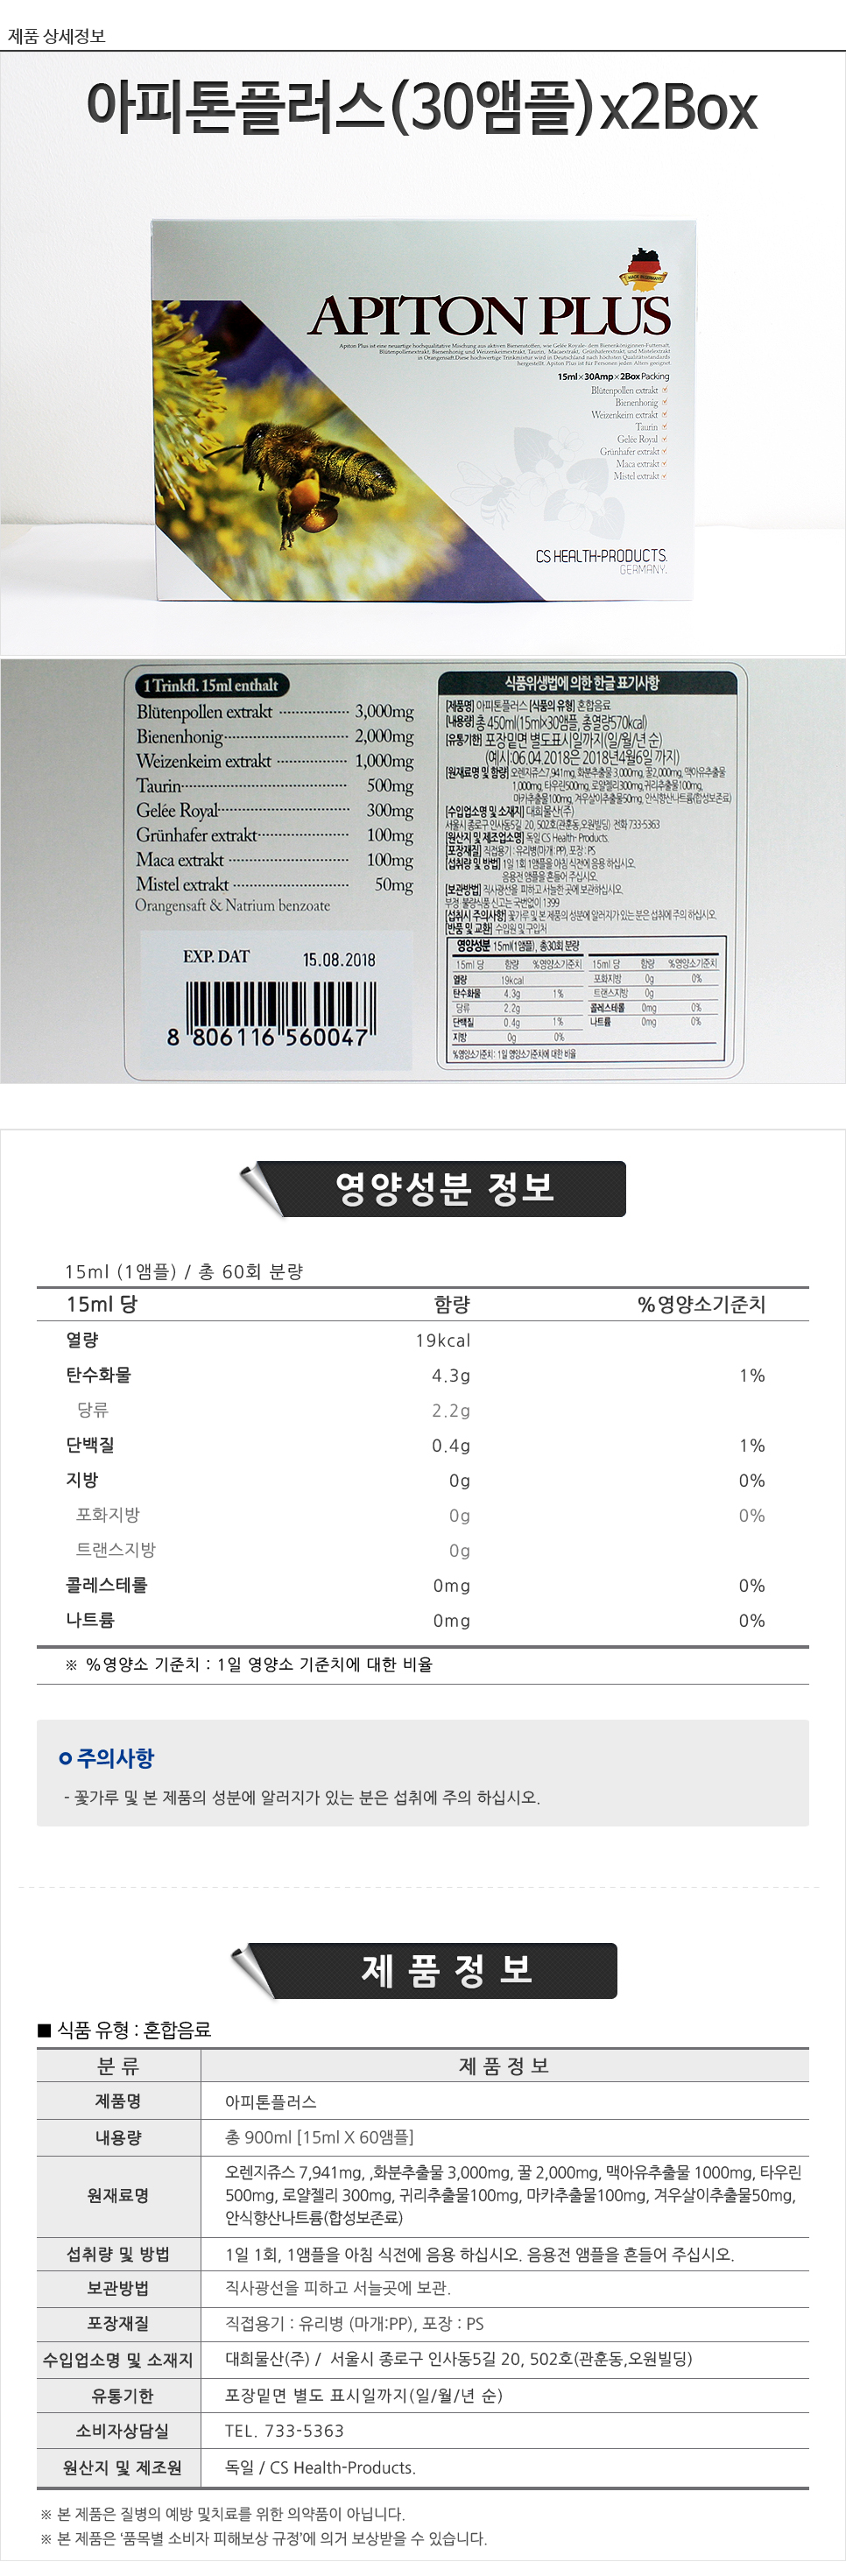 아피톤플러스(2).jpg